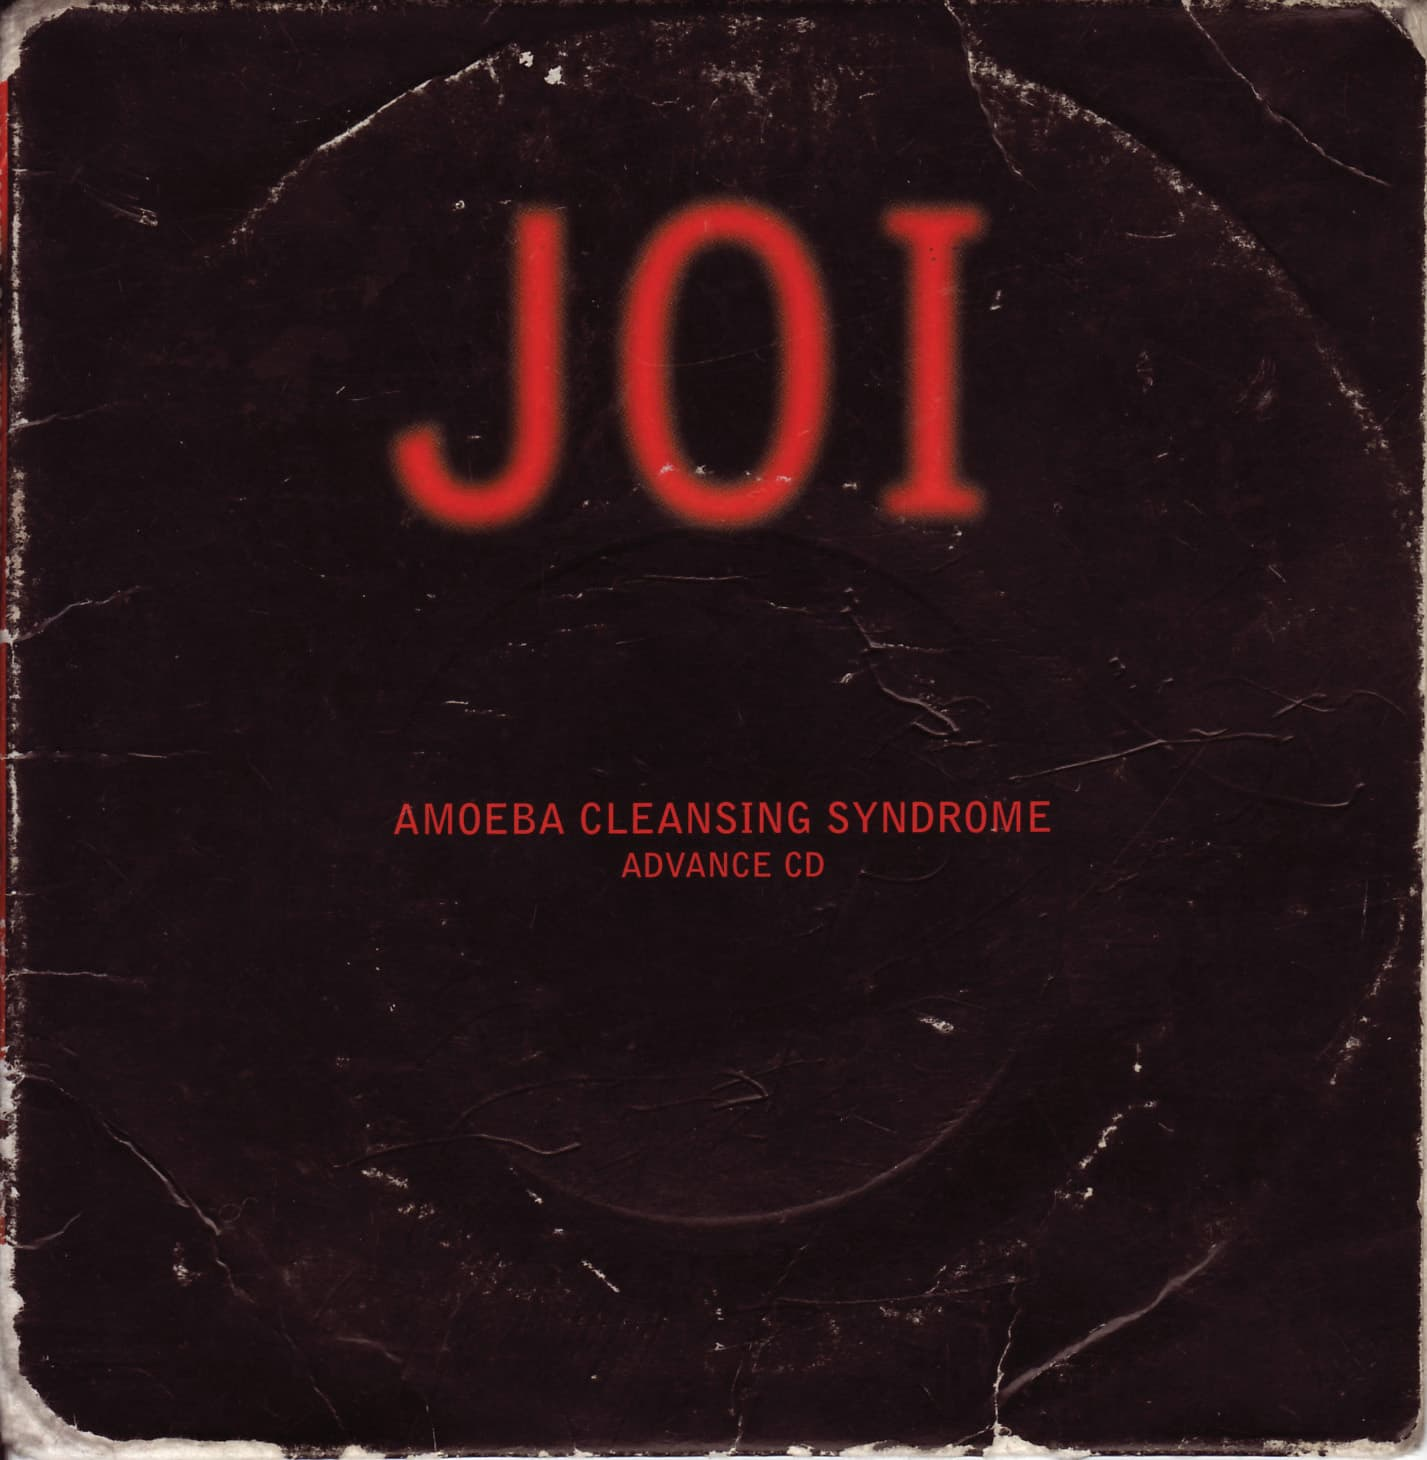 Joi - Amoeba Cleansing Syndrome